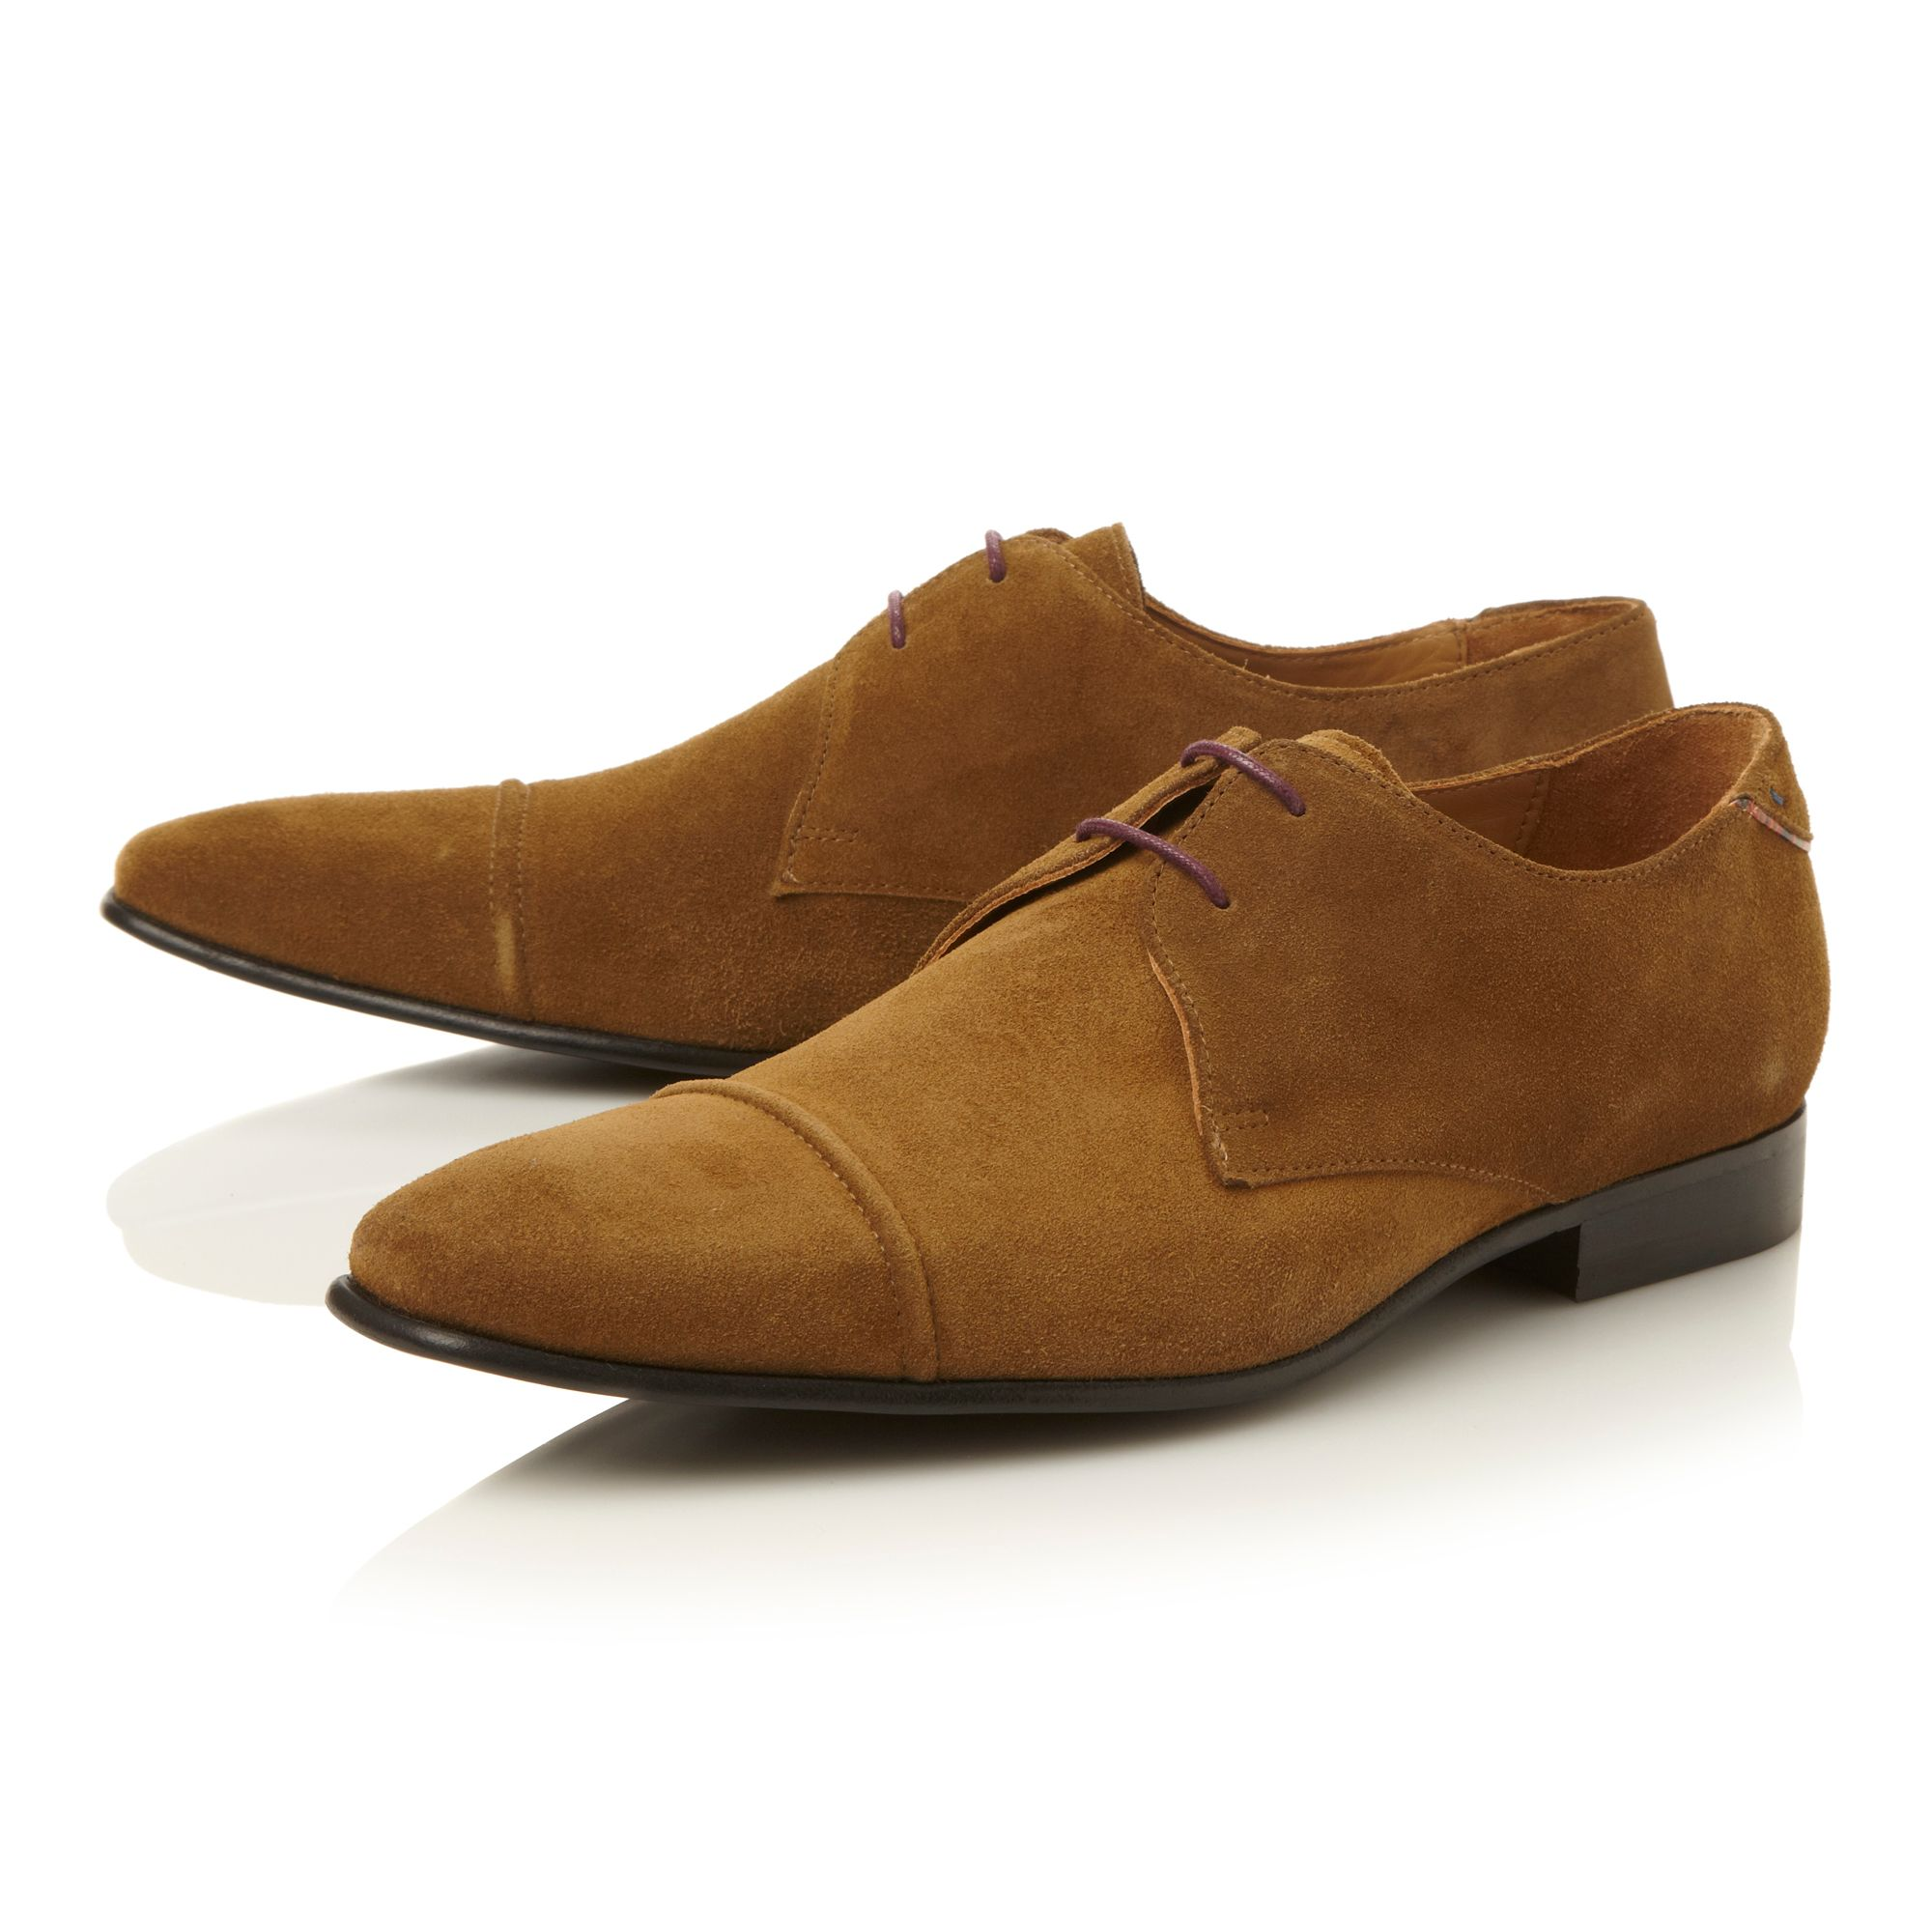 Robin top cap formal shoe